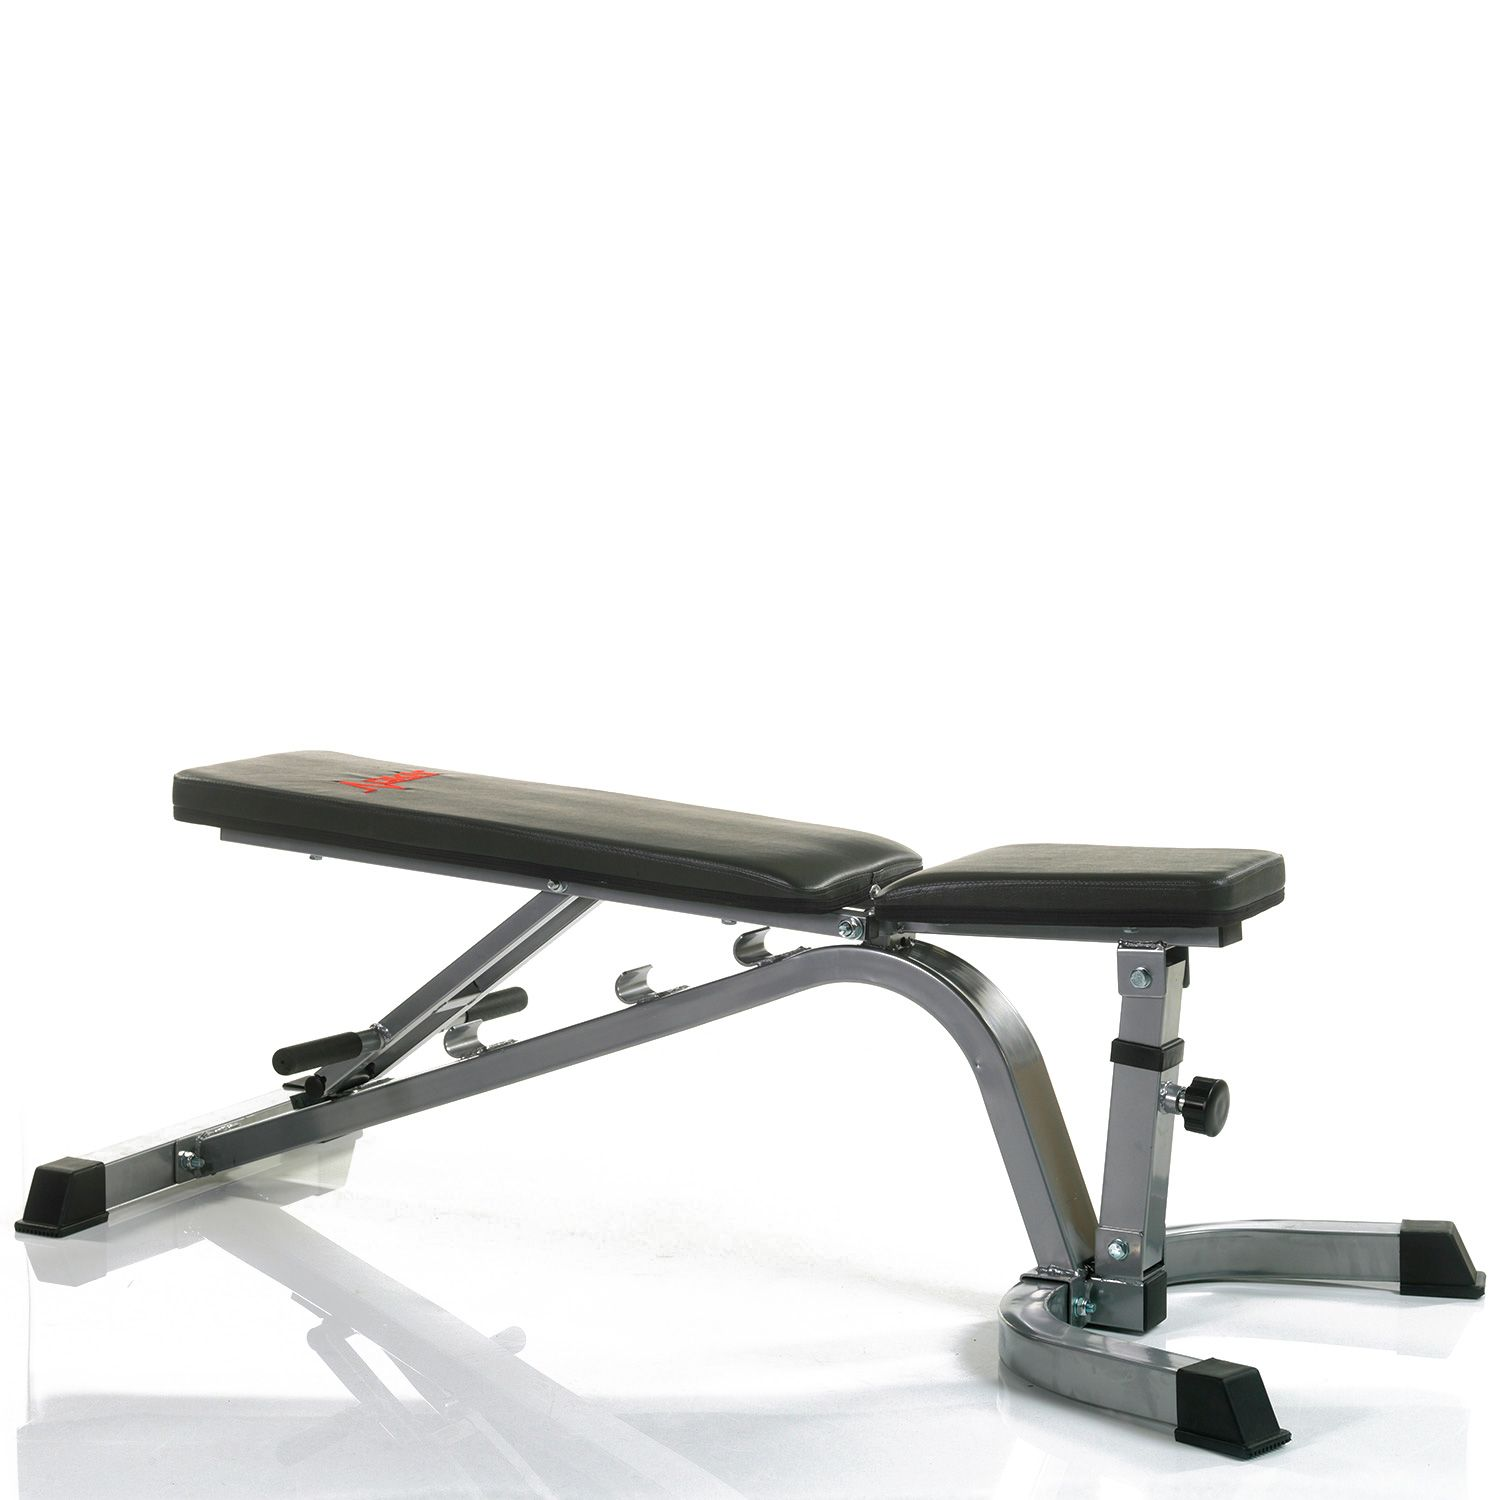 Dkn Utility Bench